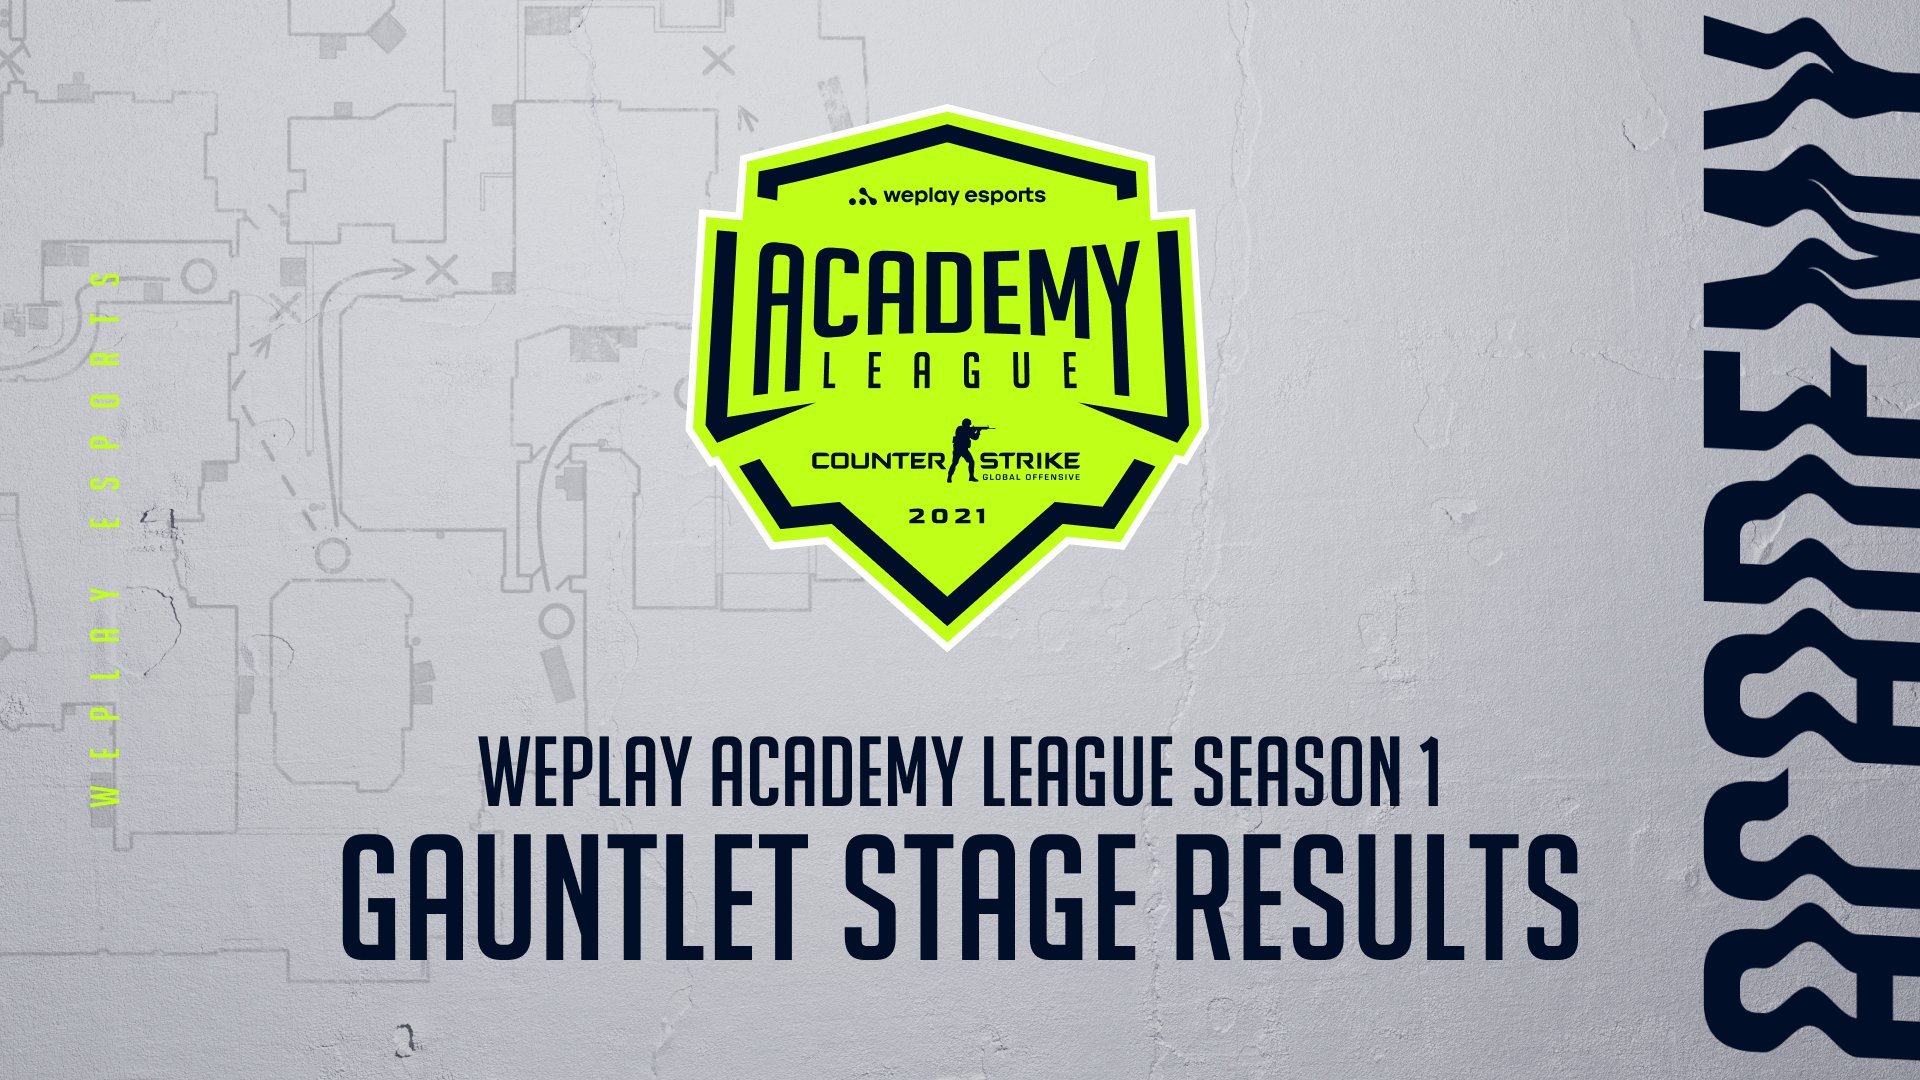 WePlay Academy League Season 1 Gauntlet Stage results. Image: WePlay Holding